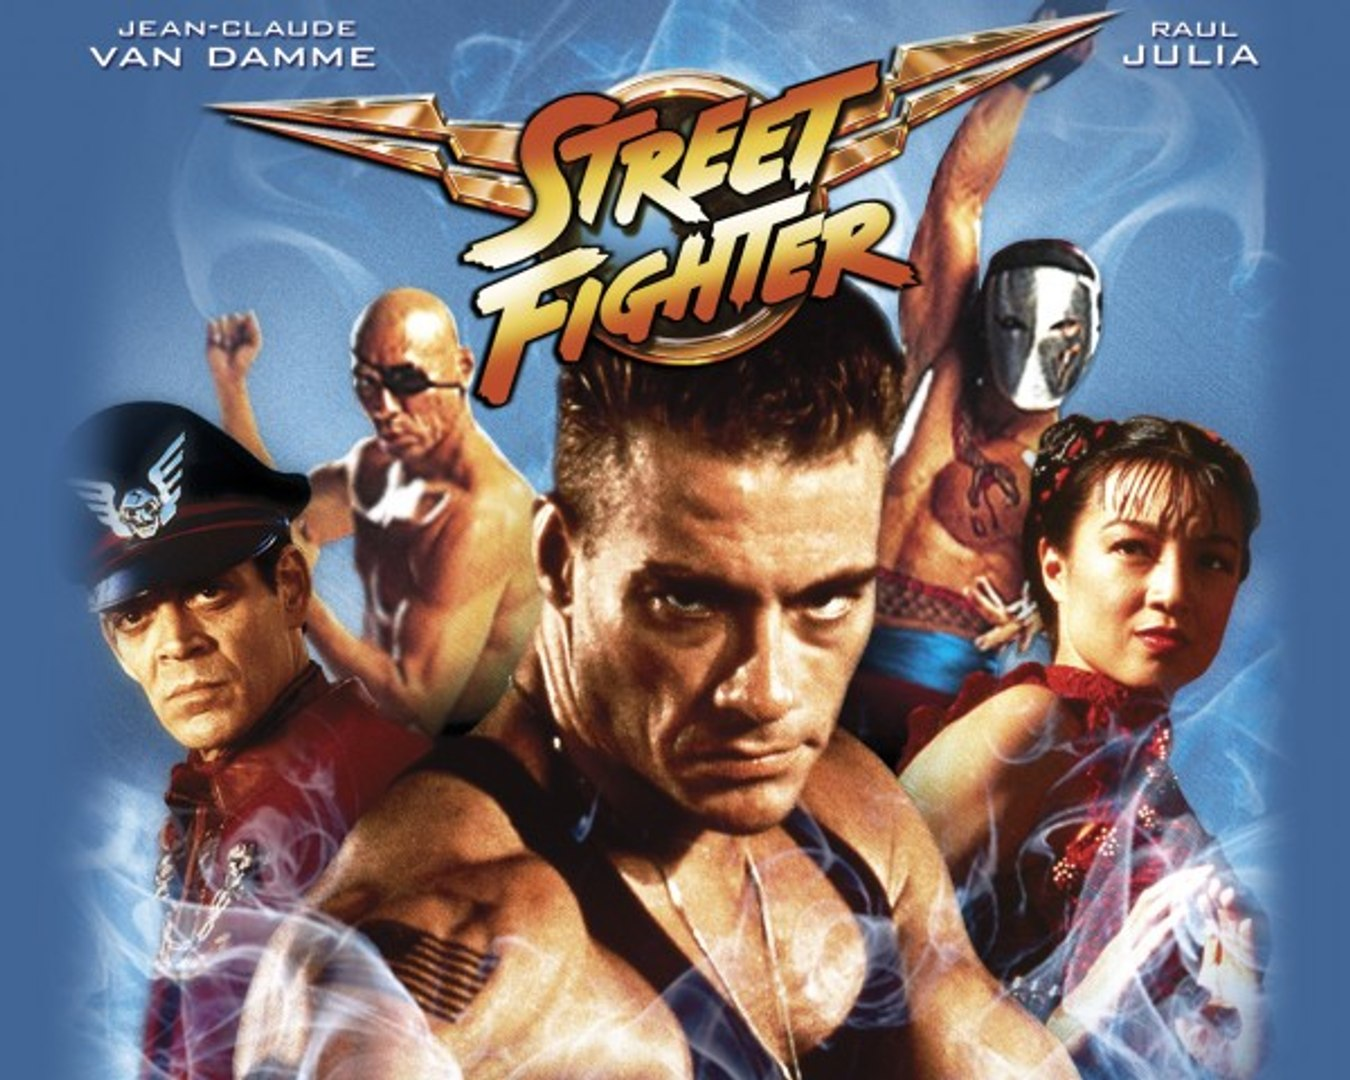 Street Fighter: The Movie - Let's Watch It Again Podcast